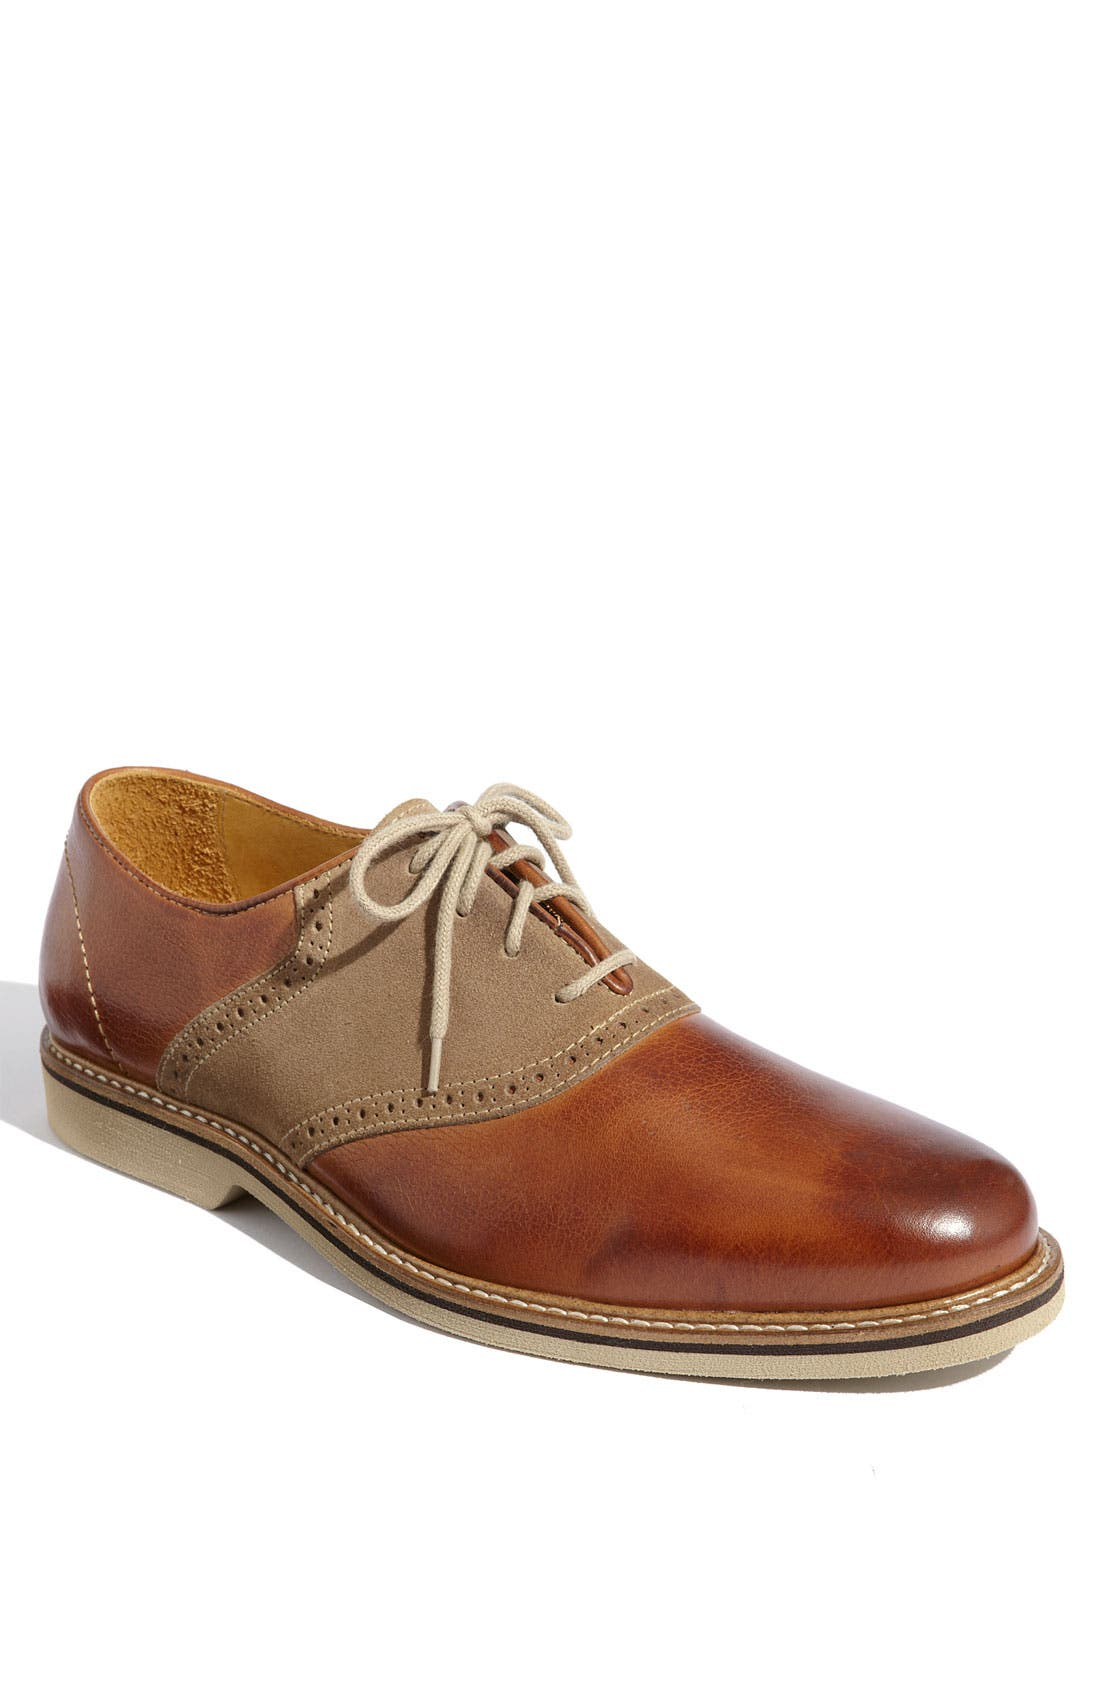 Alternate Image 1 Selected - 1901 'Bennett' Saddle Shoe (Men)